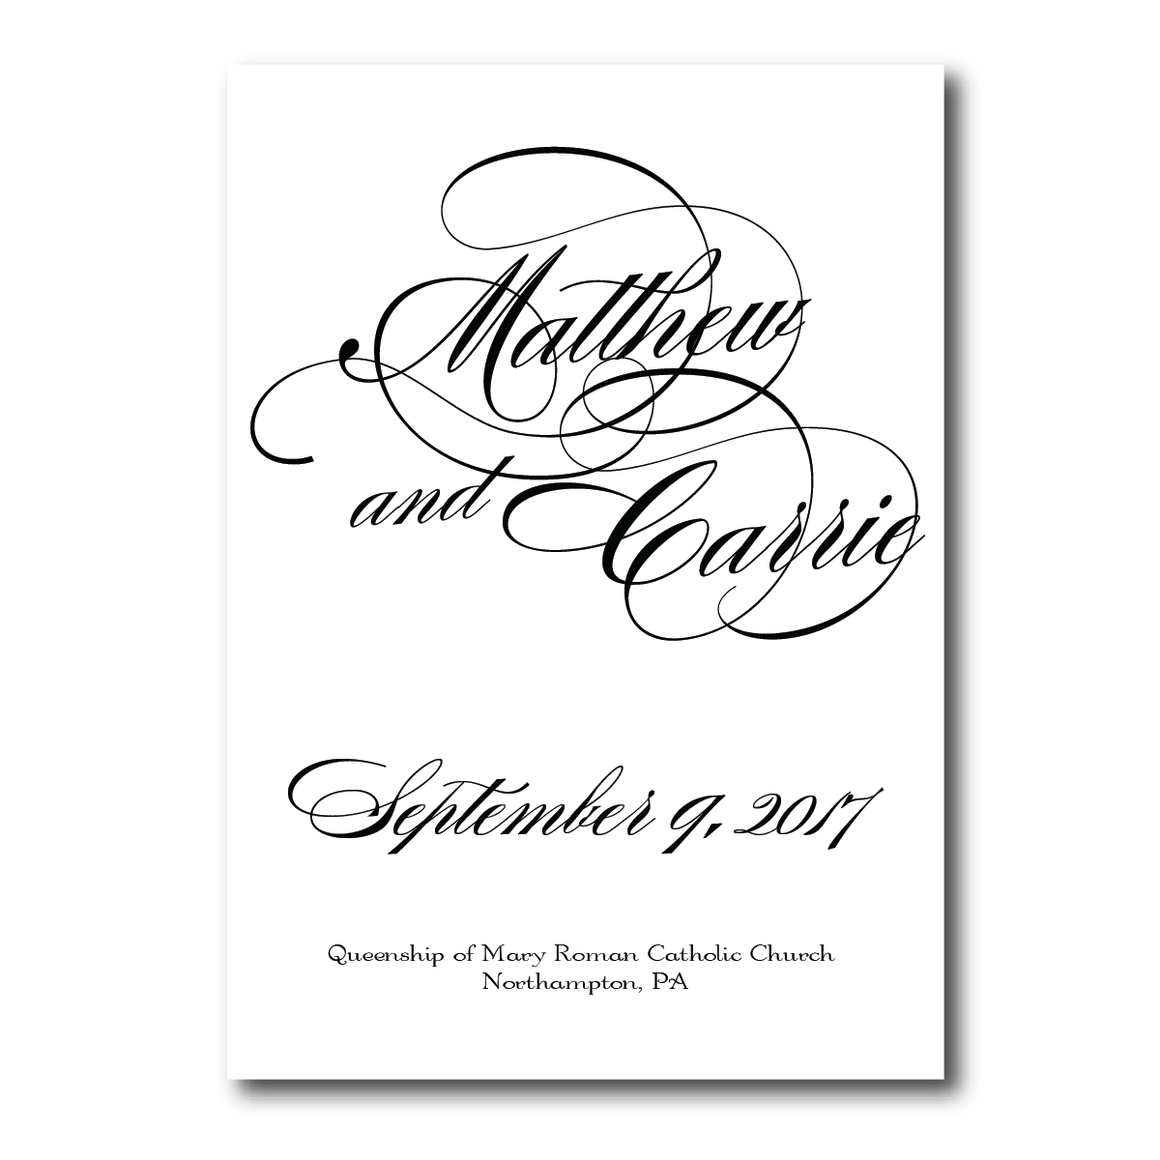 Ceremony Program - Ceremony Programs | The Diana Wedding Collection